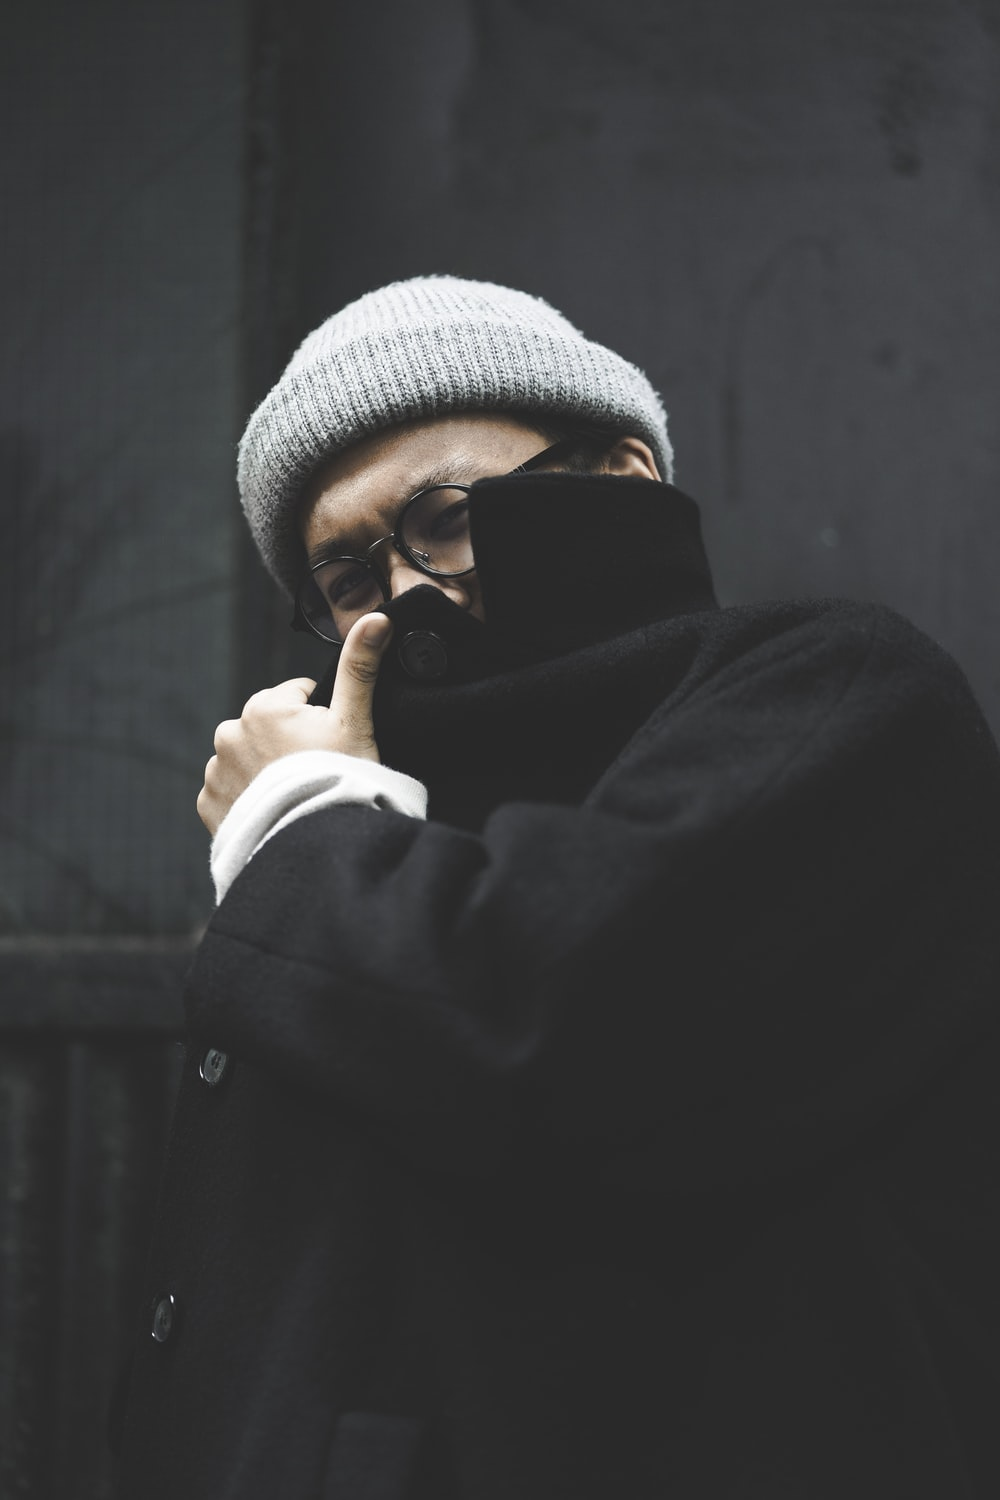 man covering his face with coat